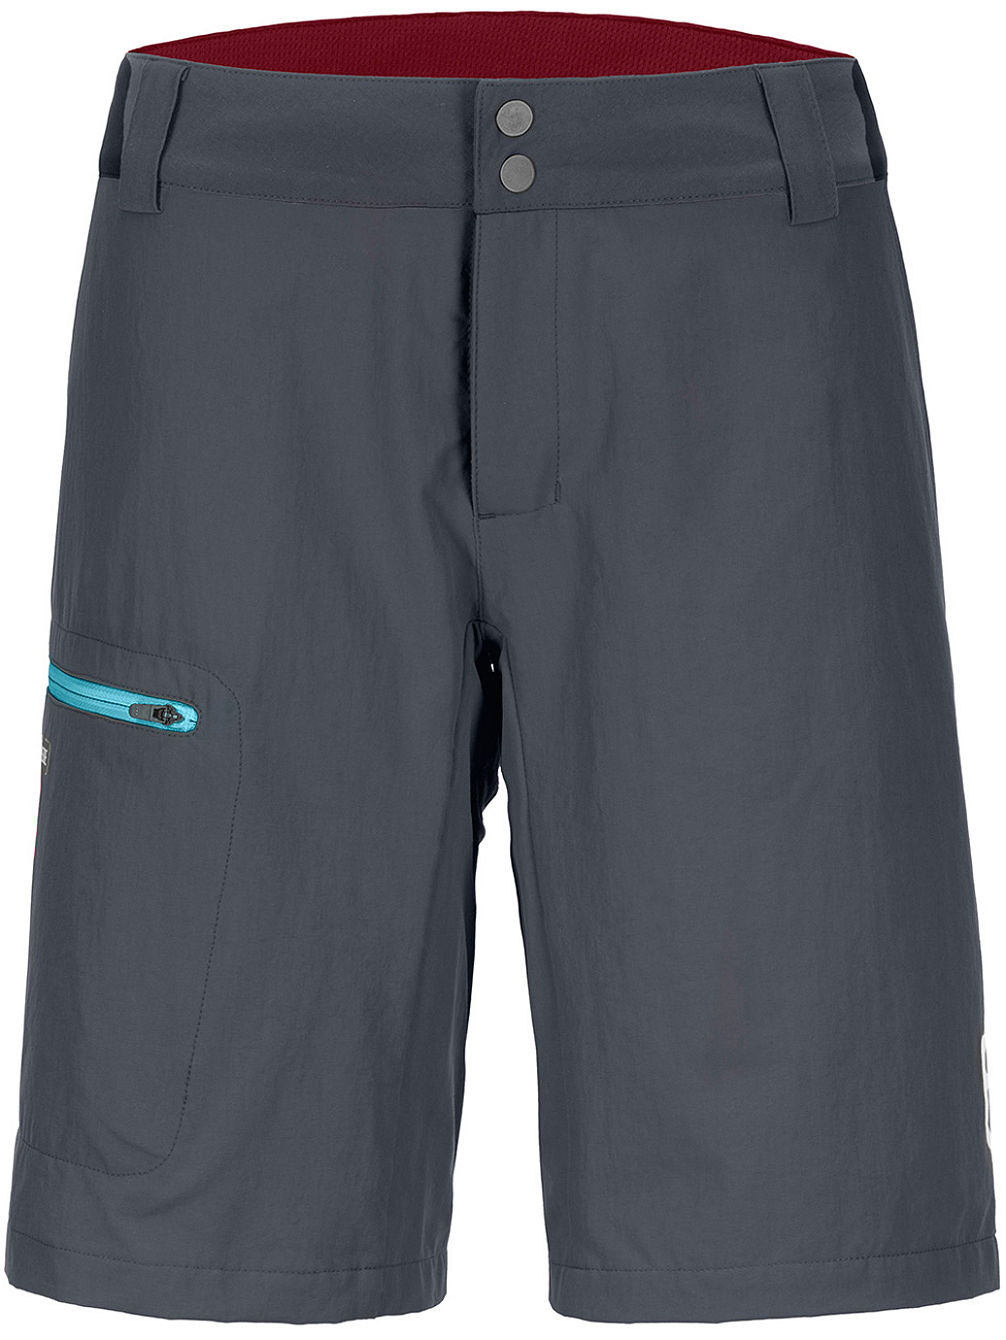 ortovox-pelmo-short-outdoor-pants